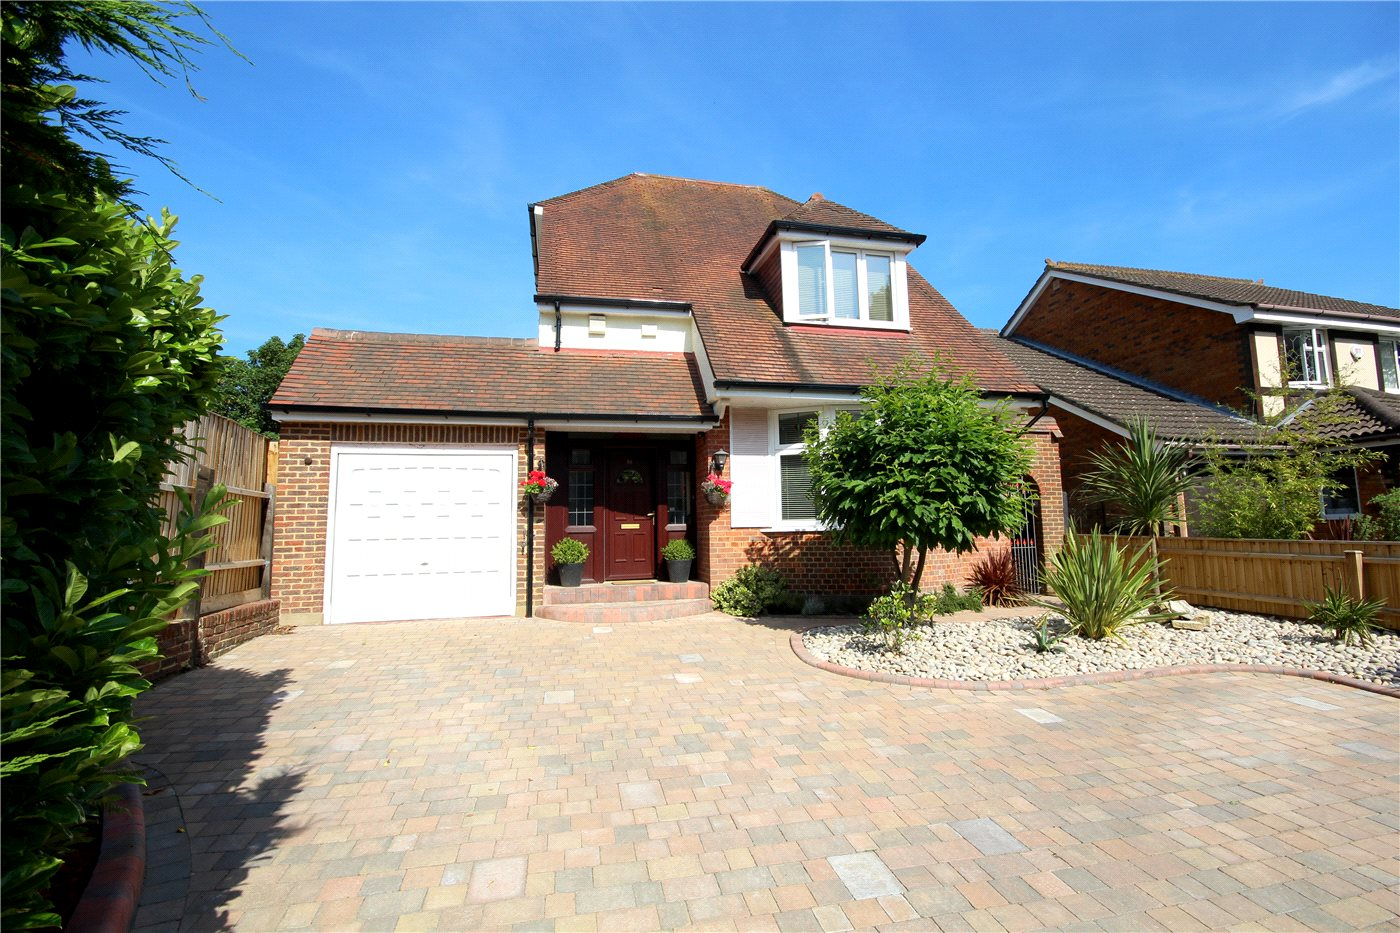 3 Bedrooms Detached House for sale in Cliff Drive, Canford Cliffs, Poole, BH13